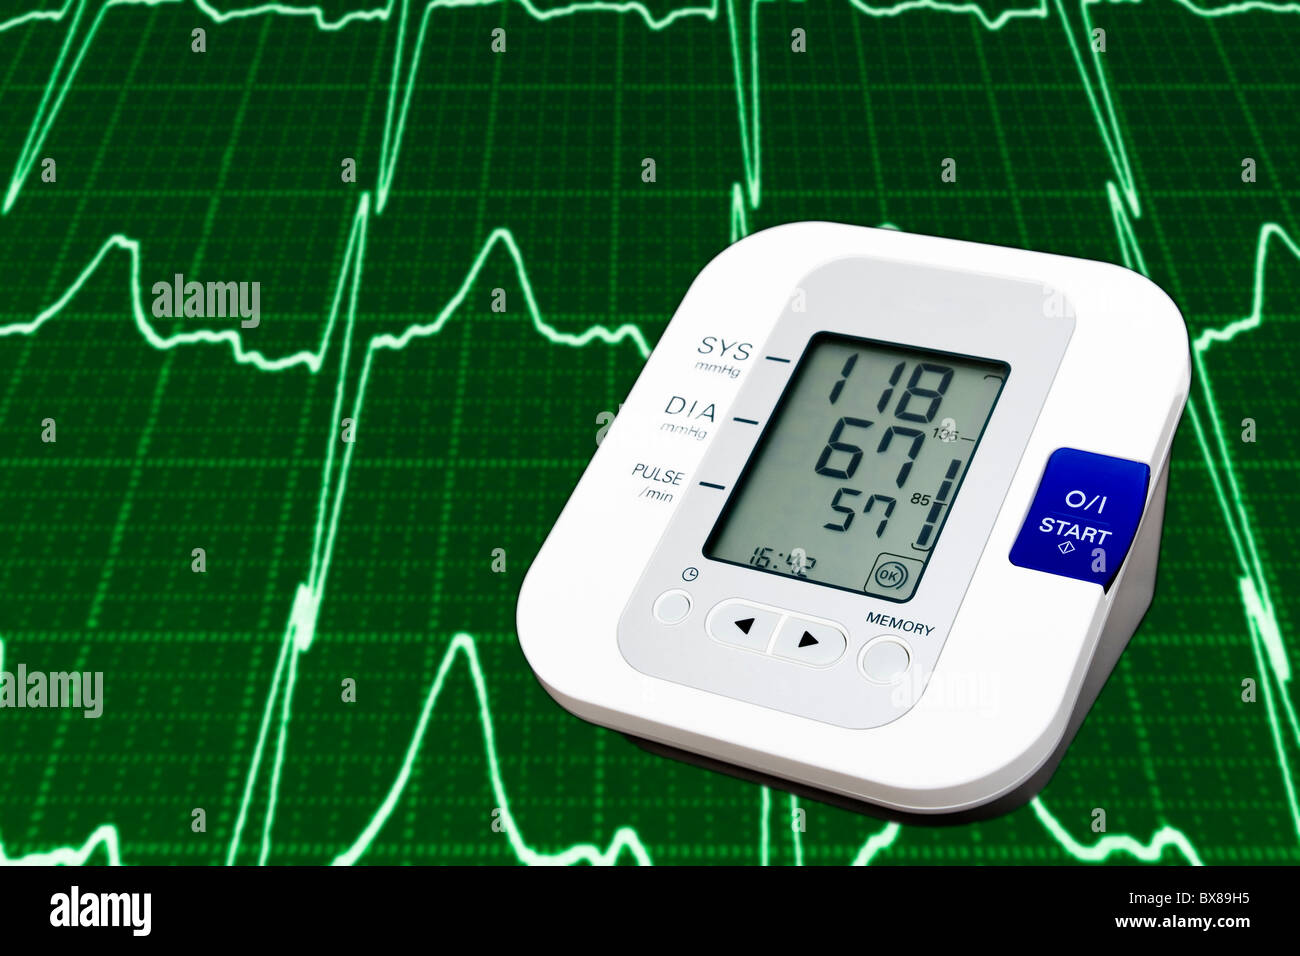 Digital blood pressure monitor with cardiogram in the background - Stock Image